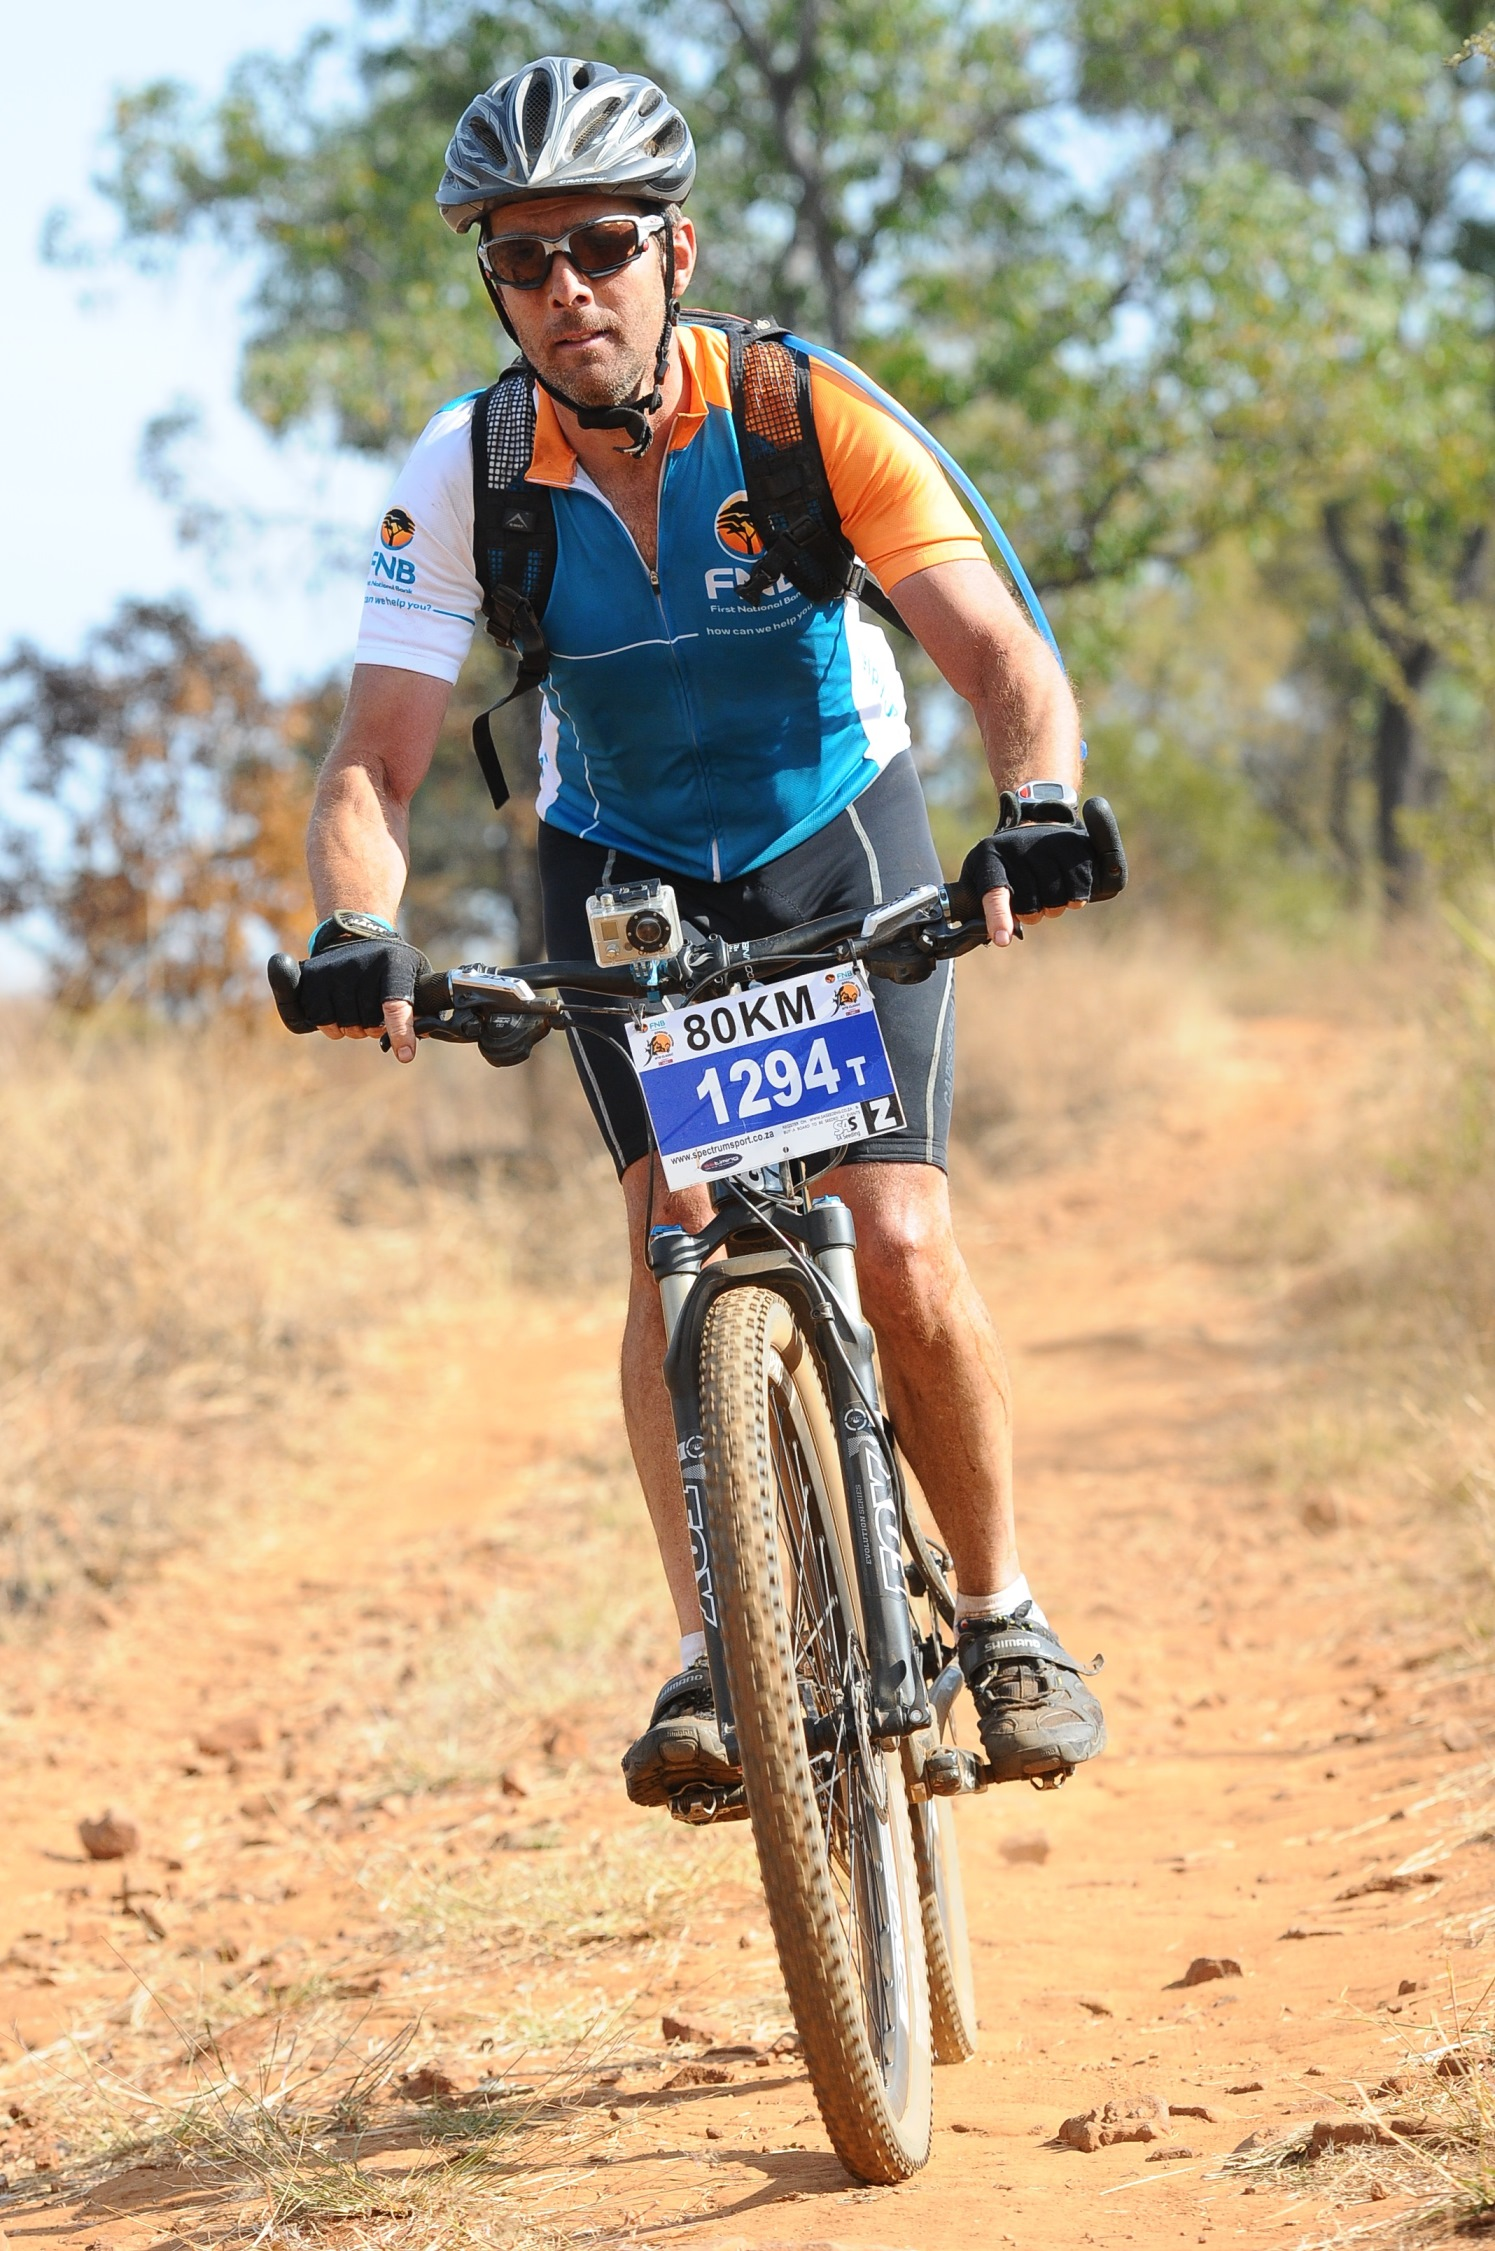 Entries Open For Fnb Magalies Monster Mtb Classic And Fnb